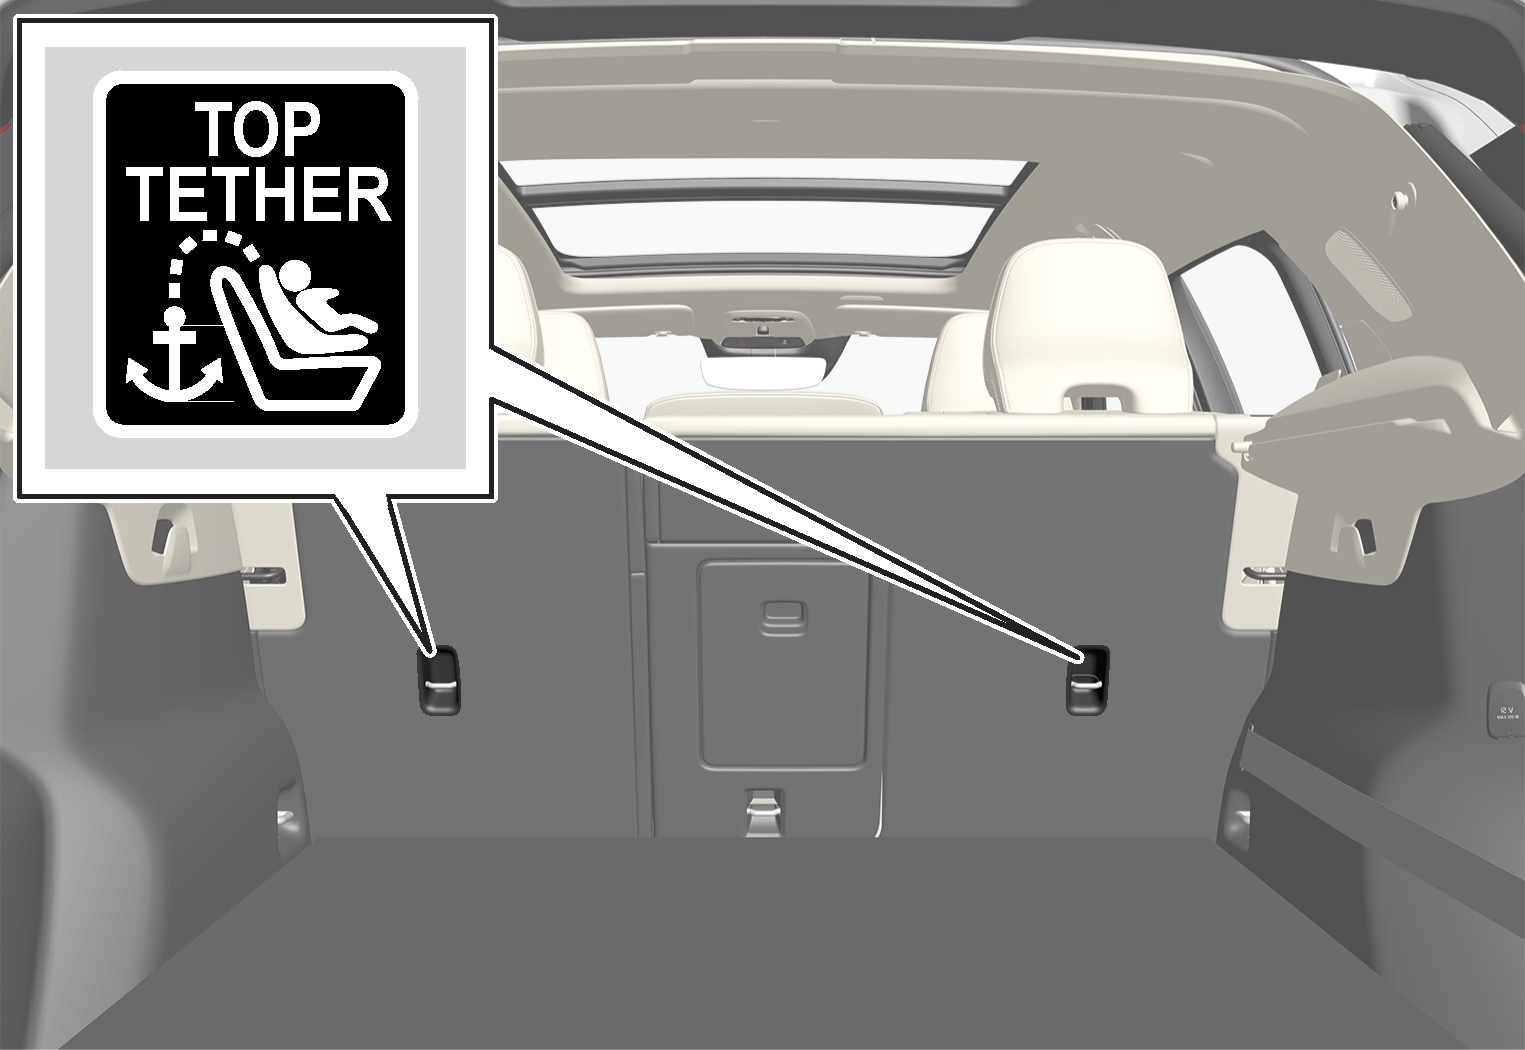 P6-1746-XC40–Safety–Top tether position